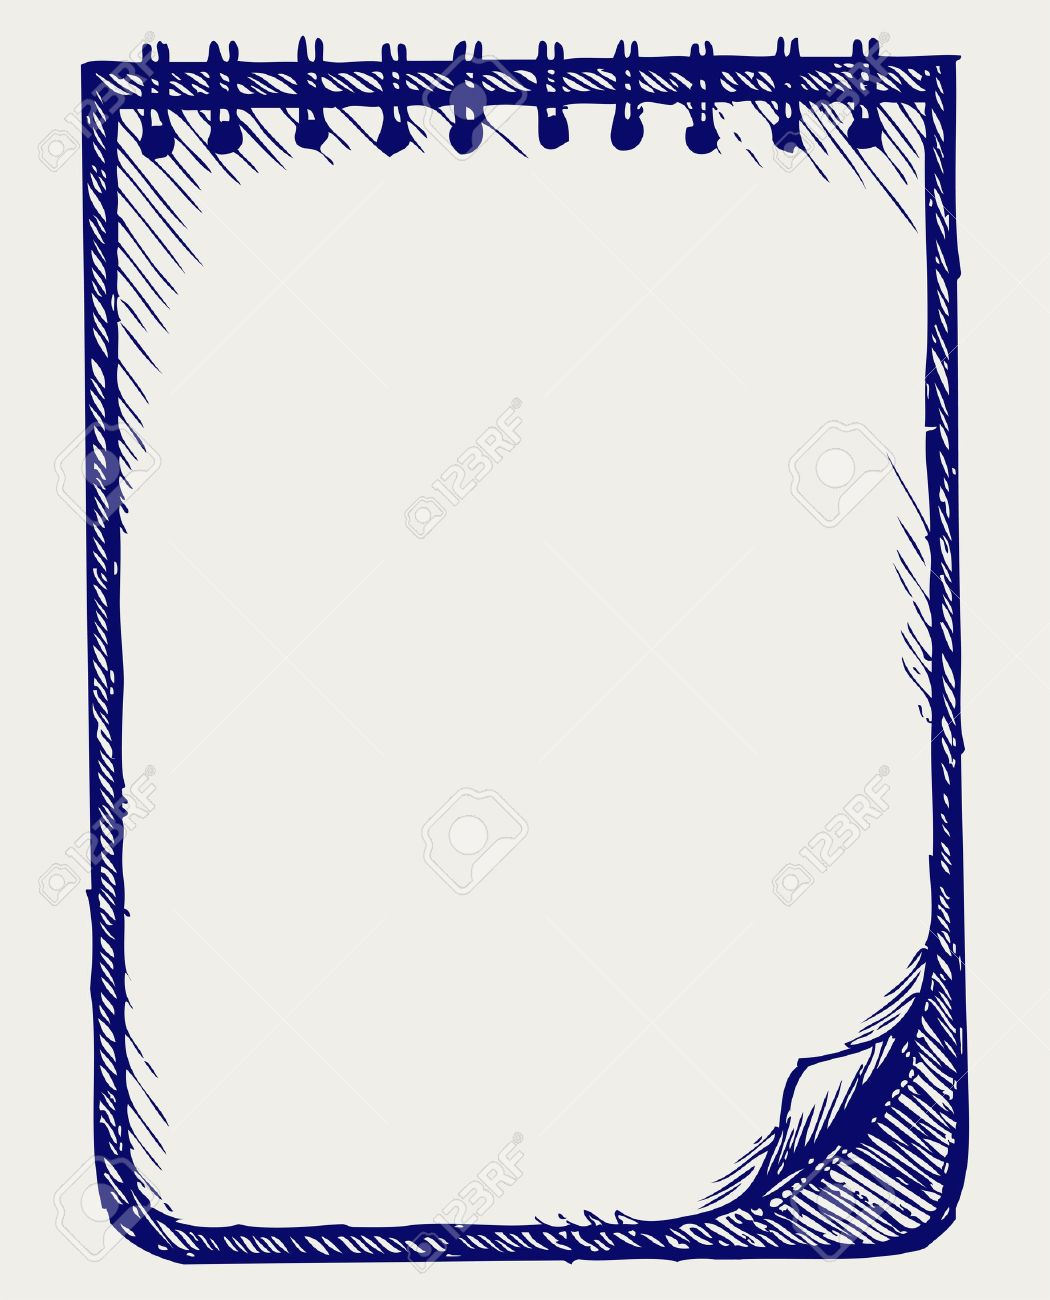 paper style - Template